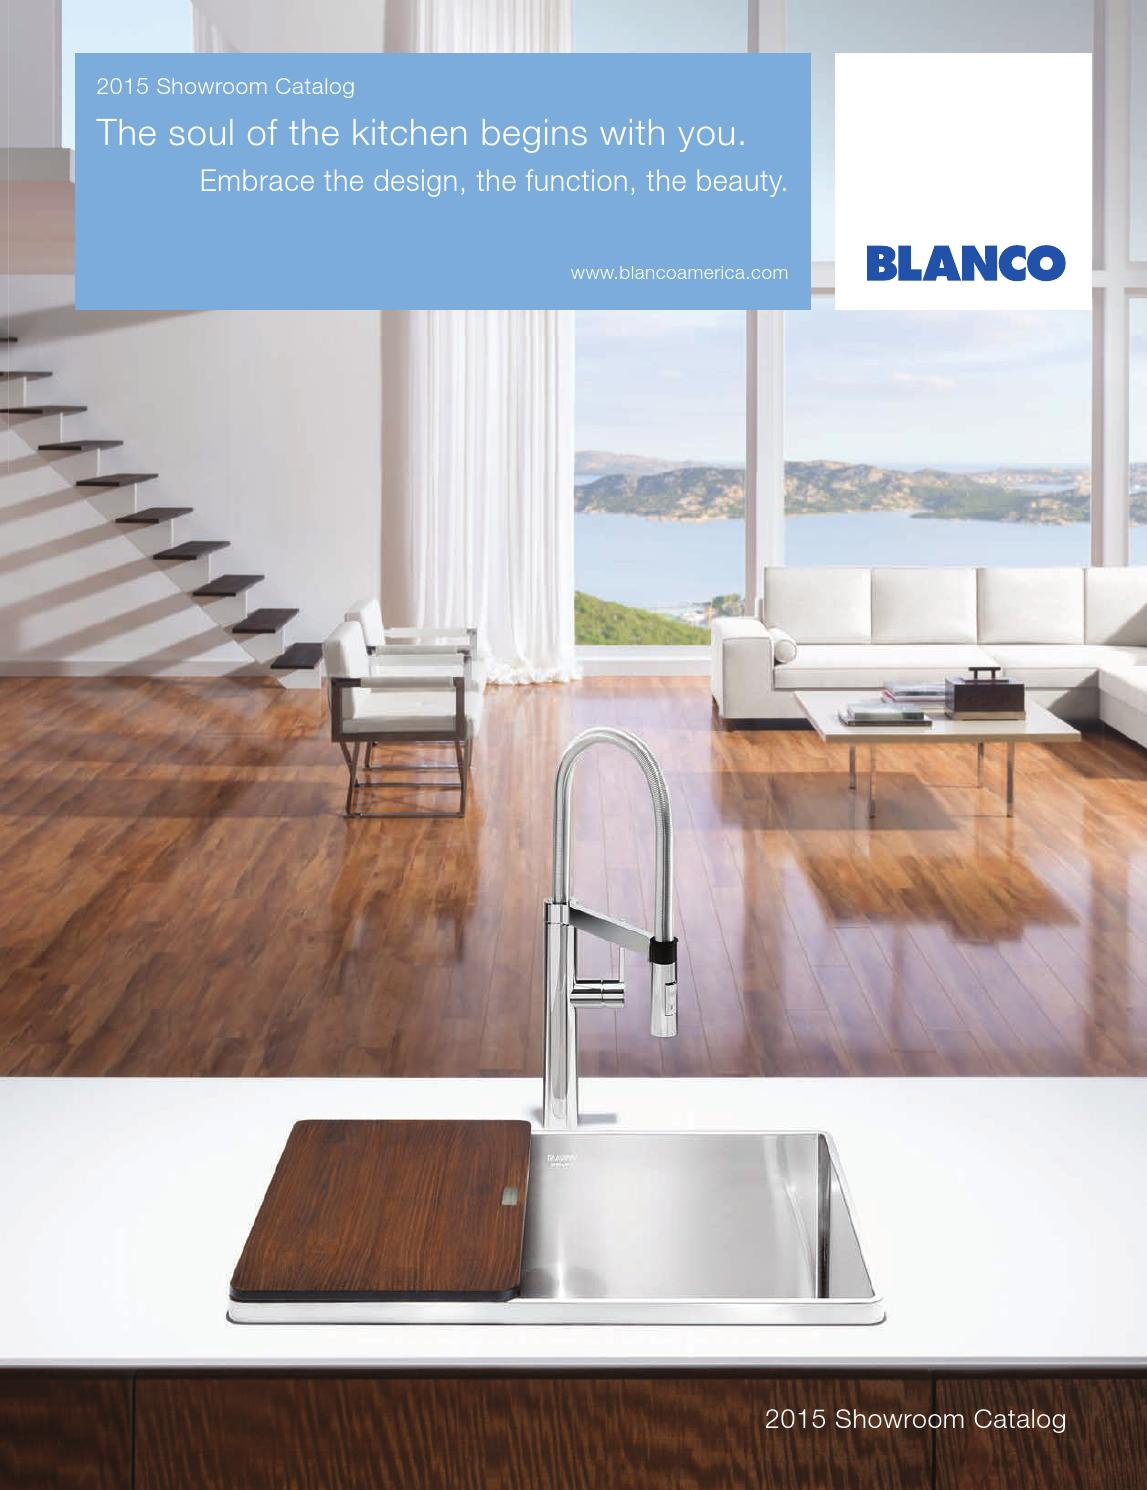 2015 blanco showroom catalog by blanco issuu for Blancoamerica com kitchen sinks